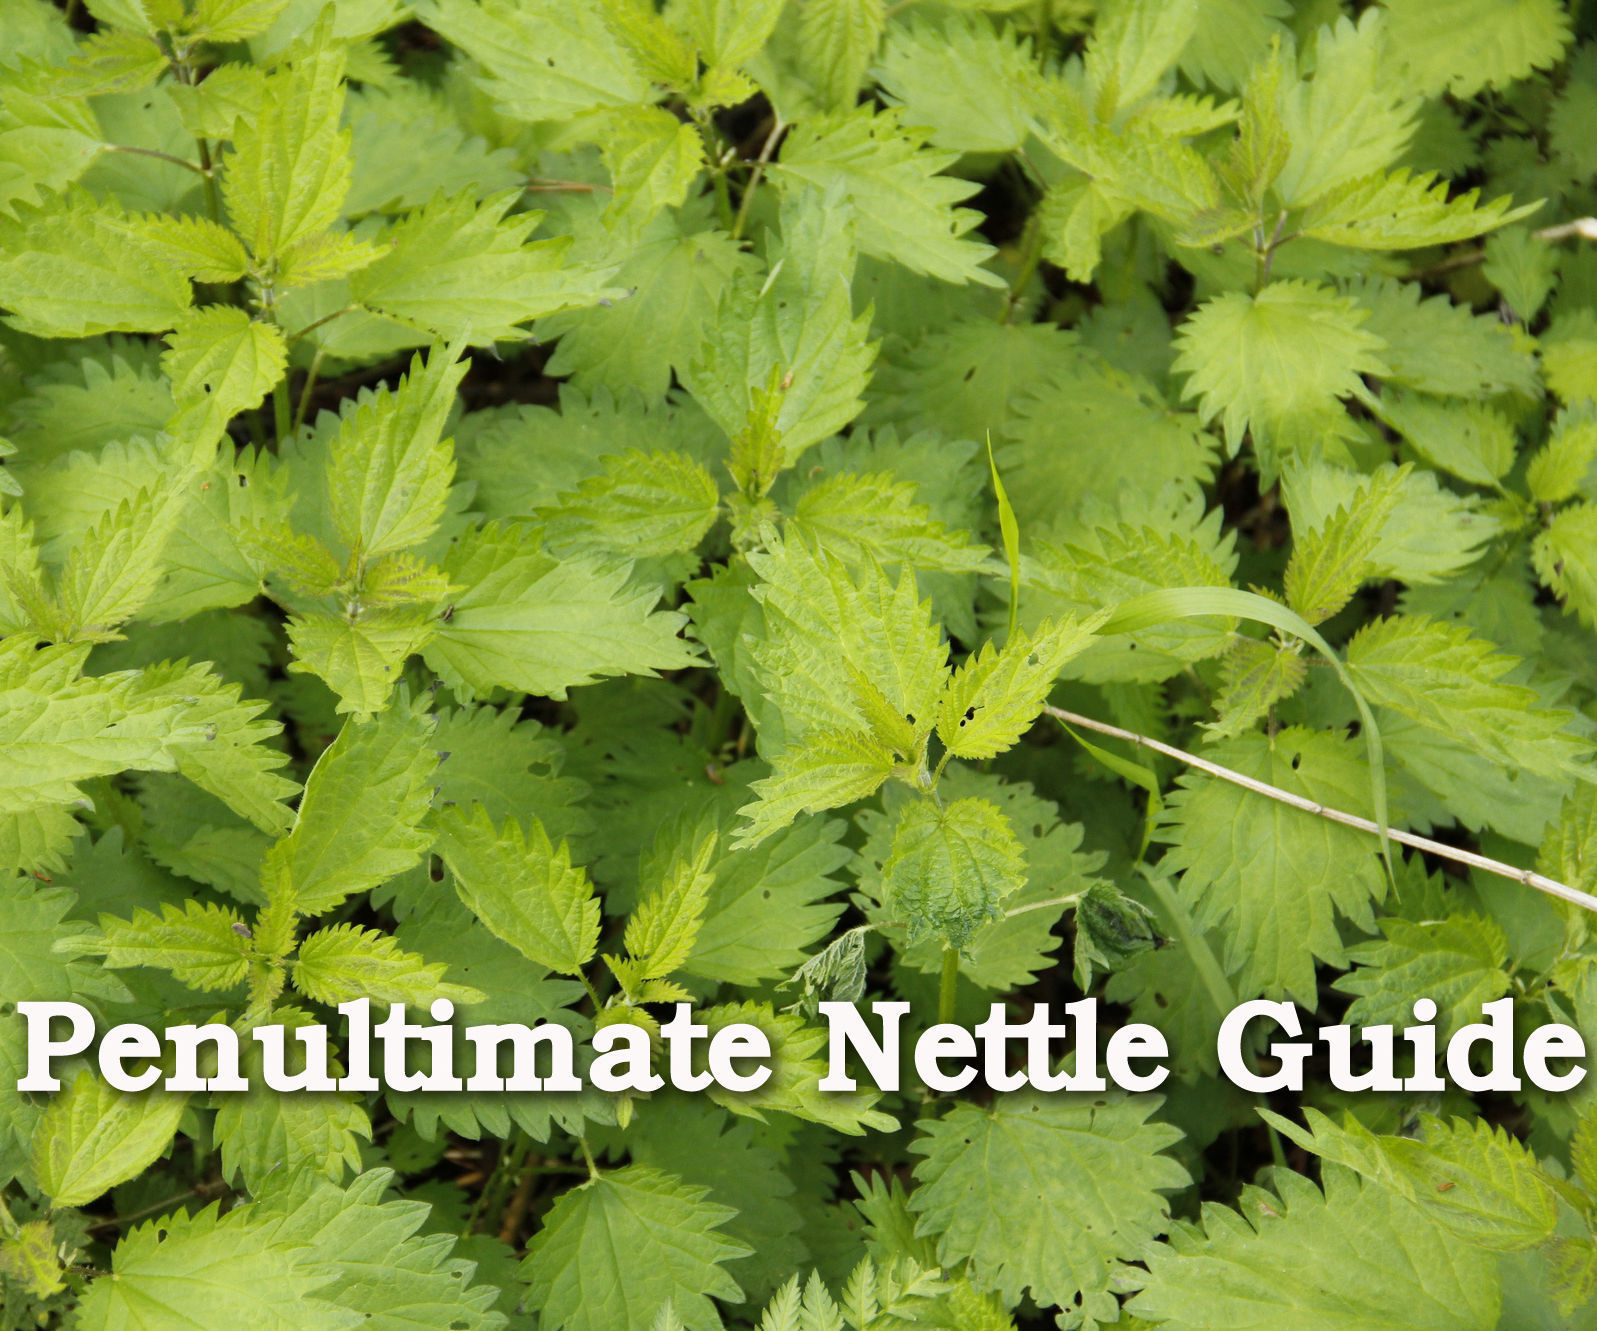 The Penultimate Nettle Guide